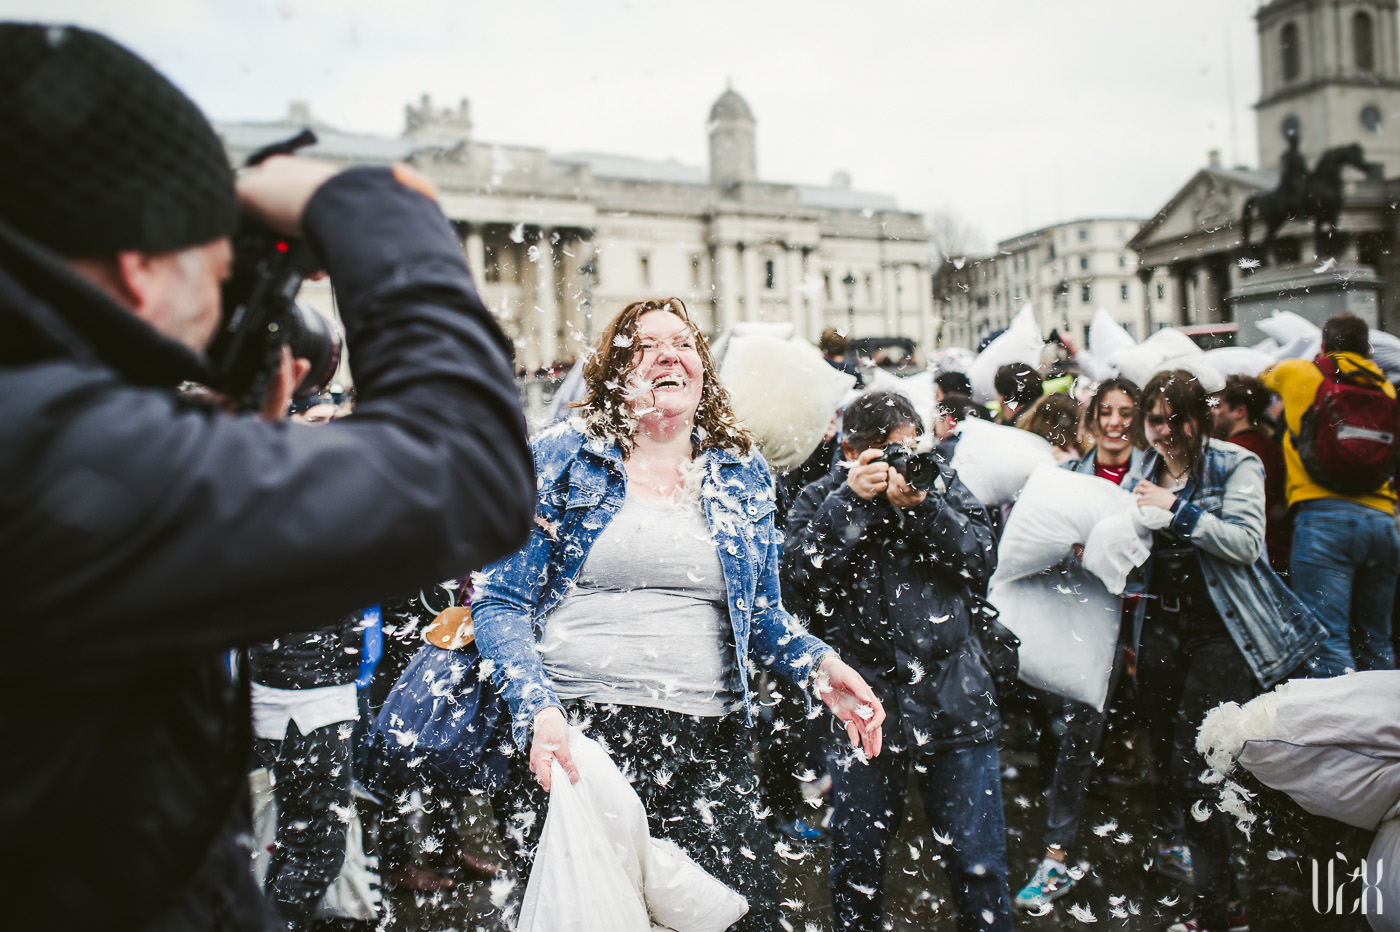 International Pillow Fight Day In London 2015 Street Photography Pagalviu Musis 08